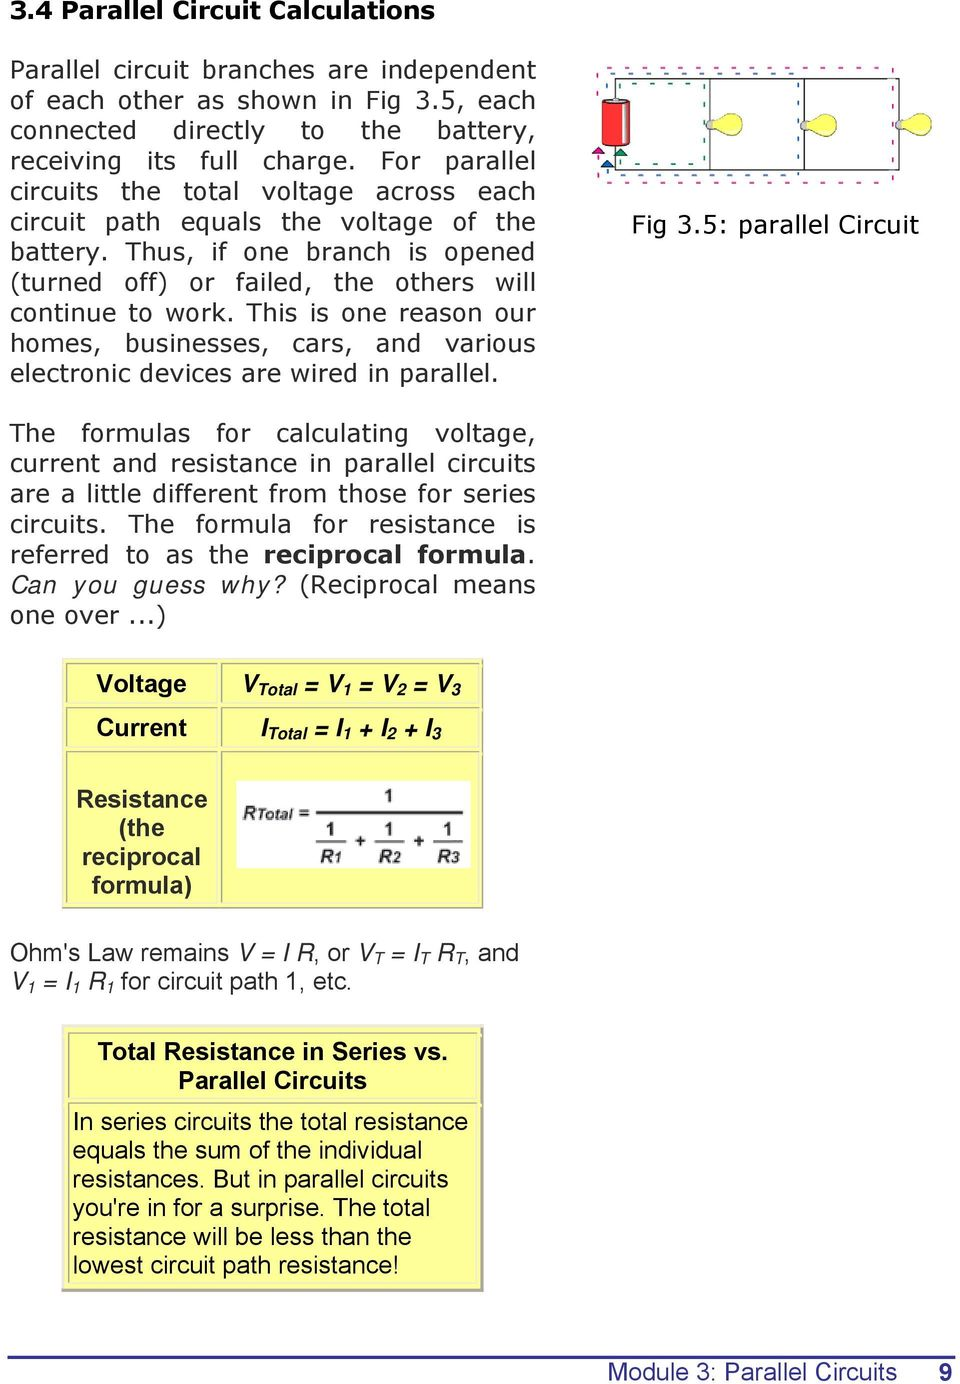 Series Circuit And Parallel Electrical Fundamentals Module 3 Circuits Pdf 9 This Is One Reason Our Homes Businesses Cars Various Electronic Devices Are